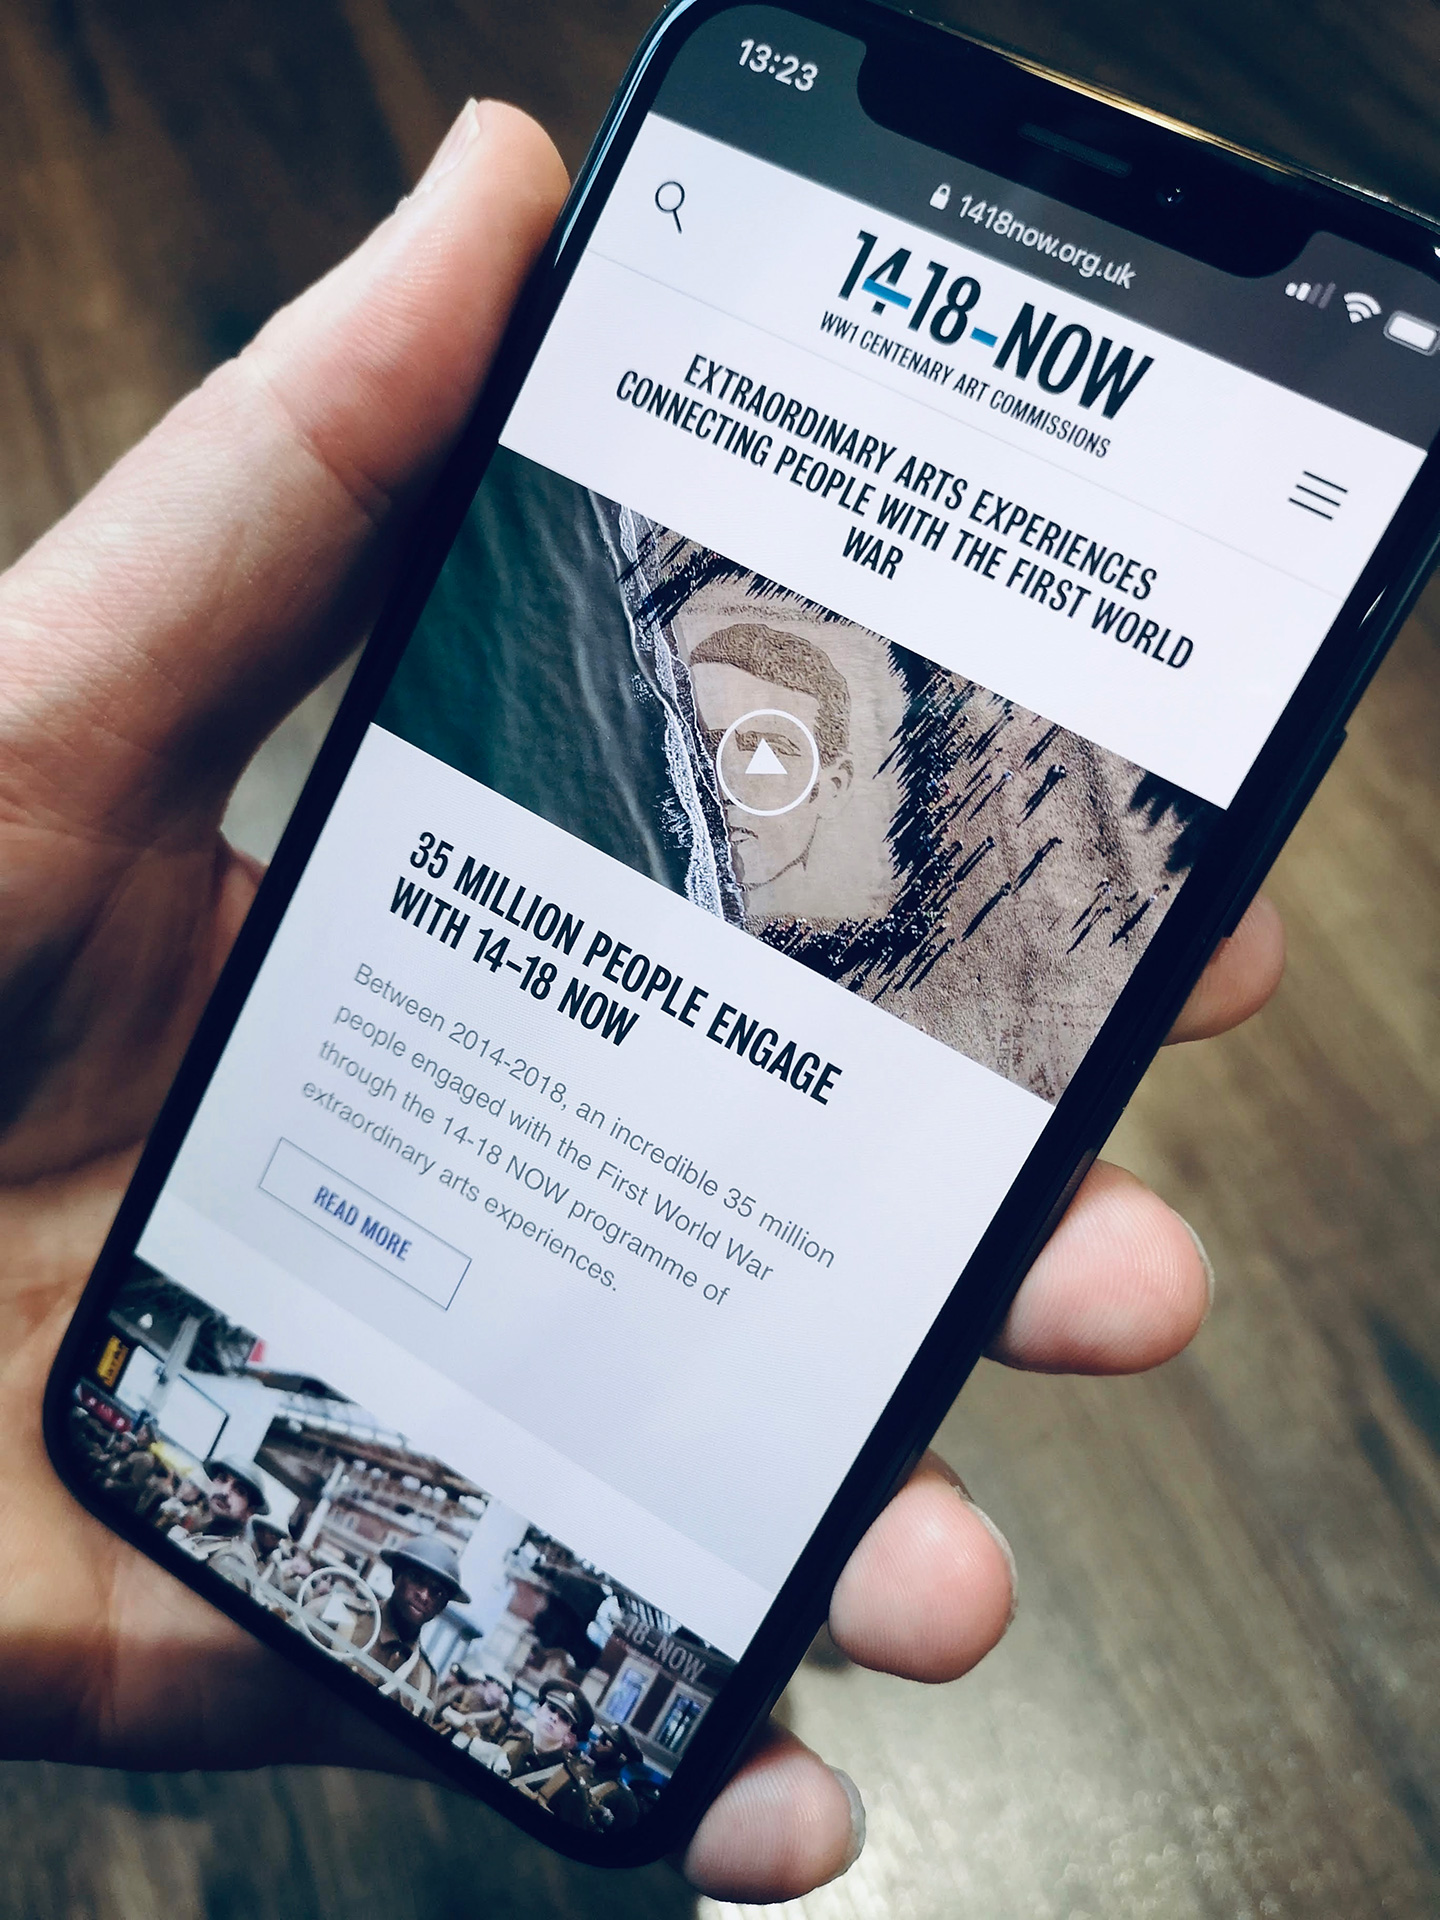 14-18 NOW website on a smartphone